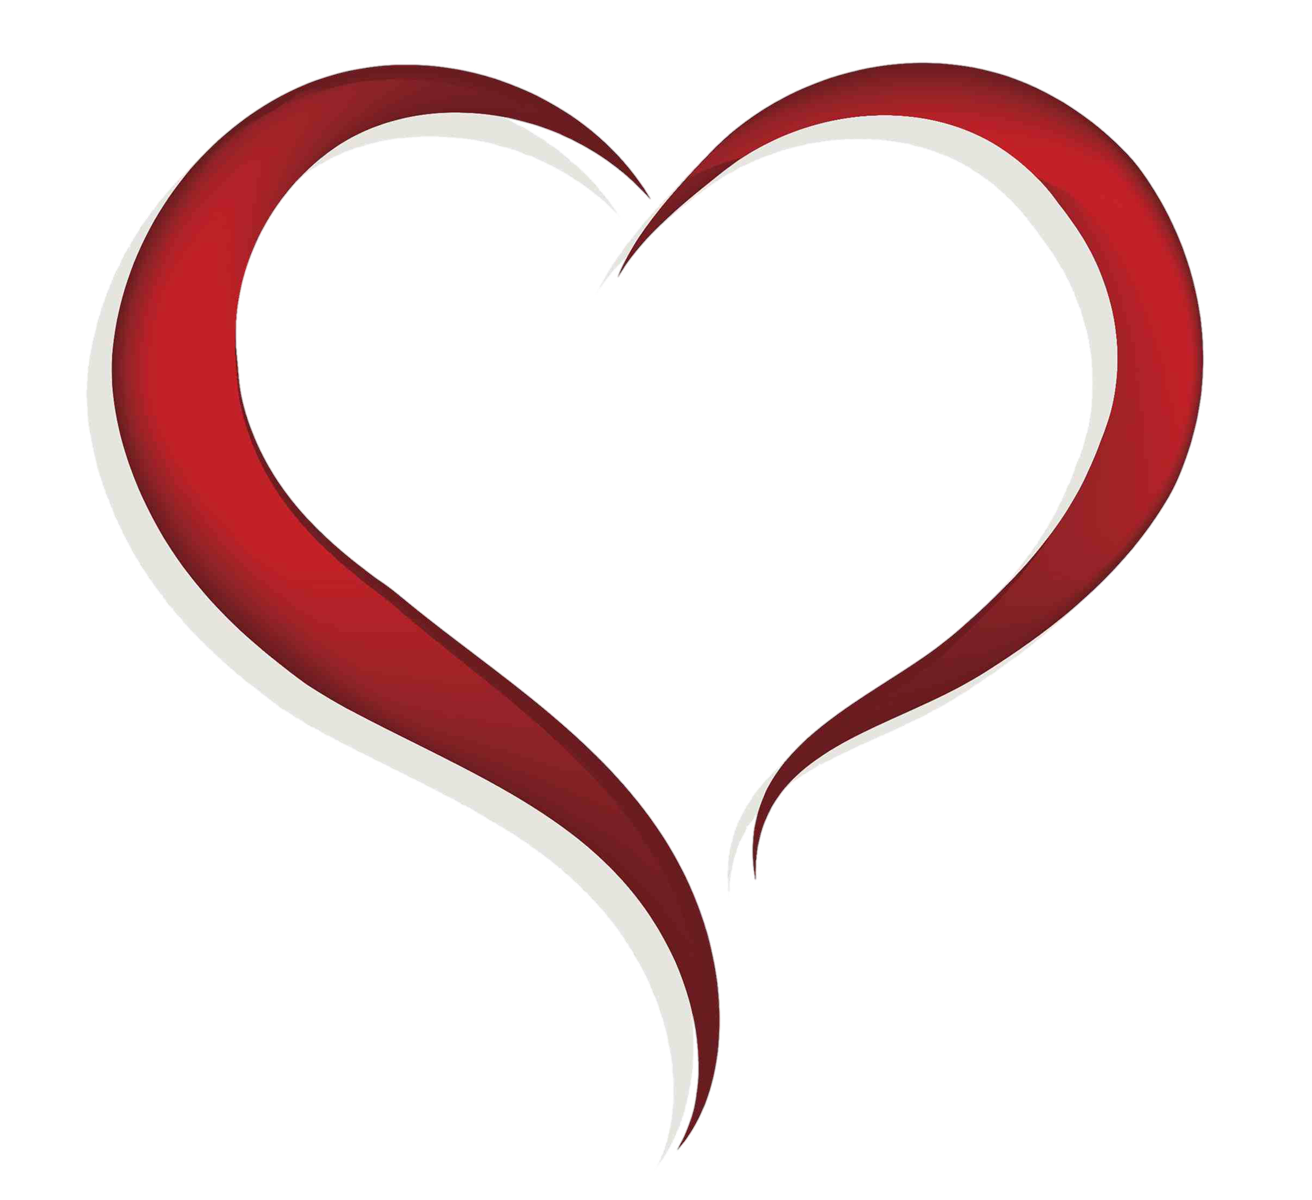 Heart Clipart Png Image Download Free